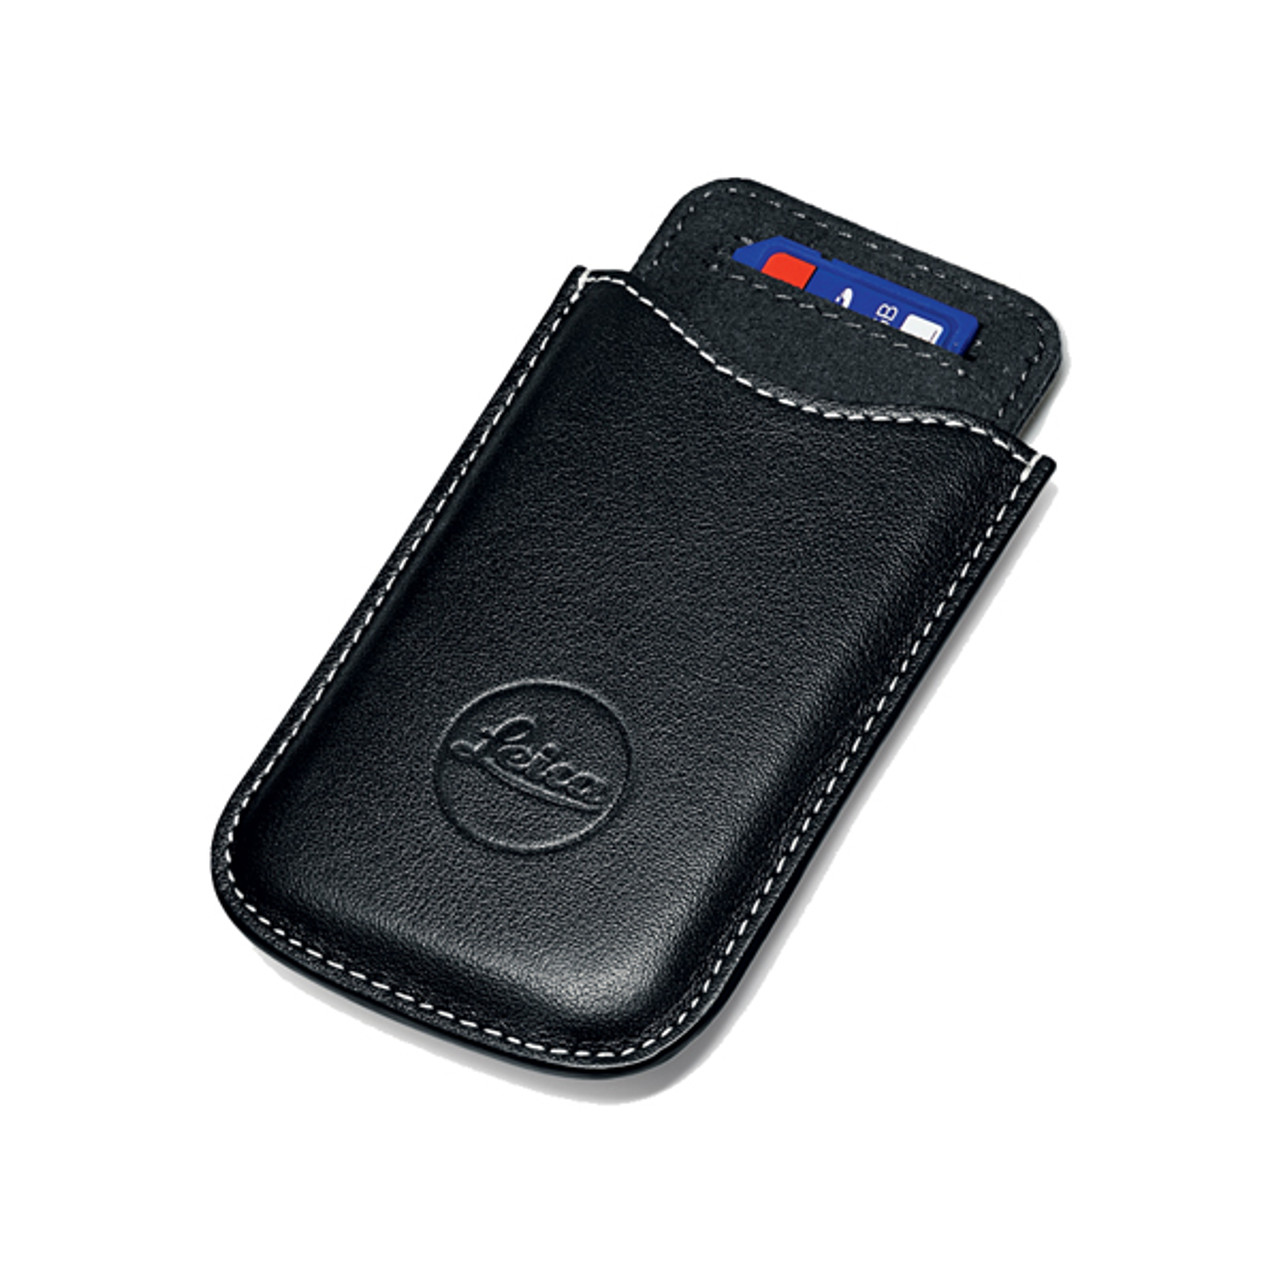 Leica SD and Credit Card Holder Black Leather